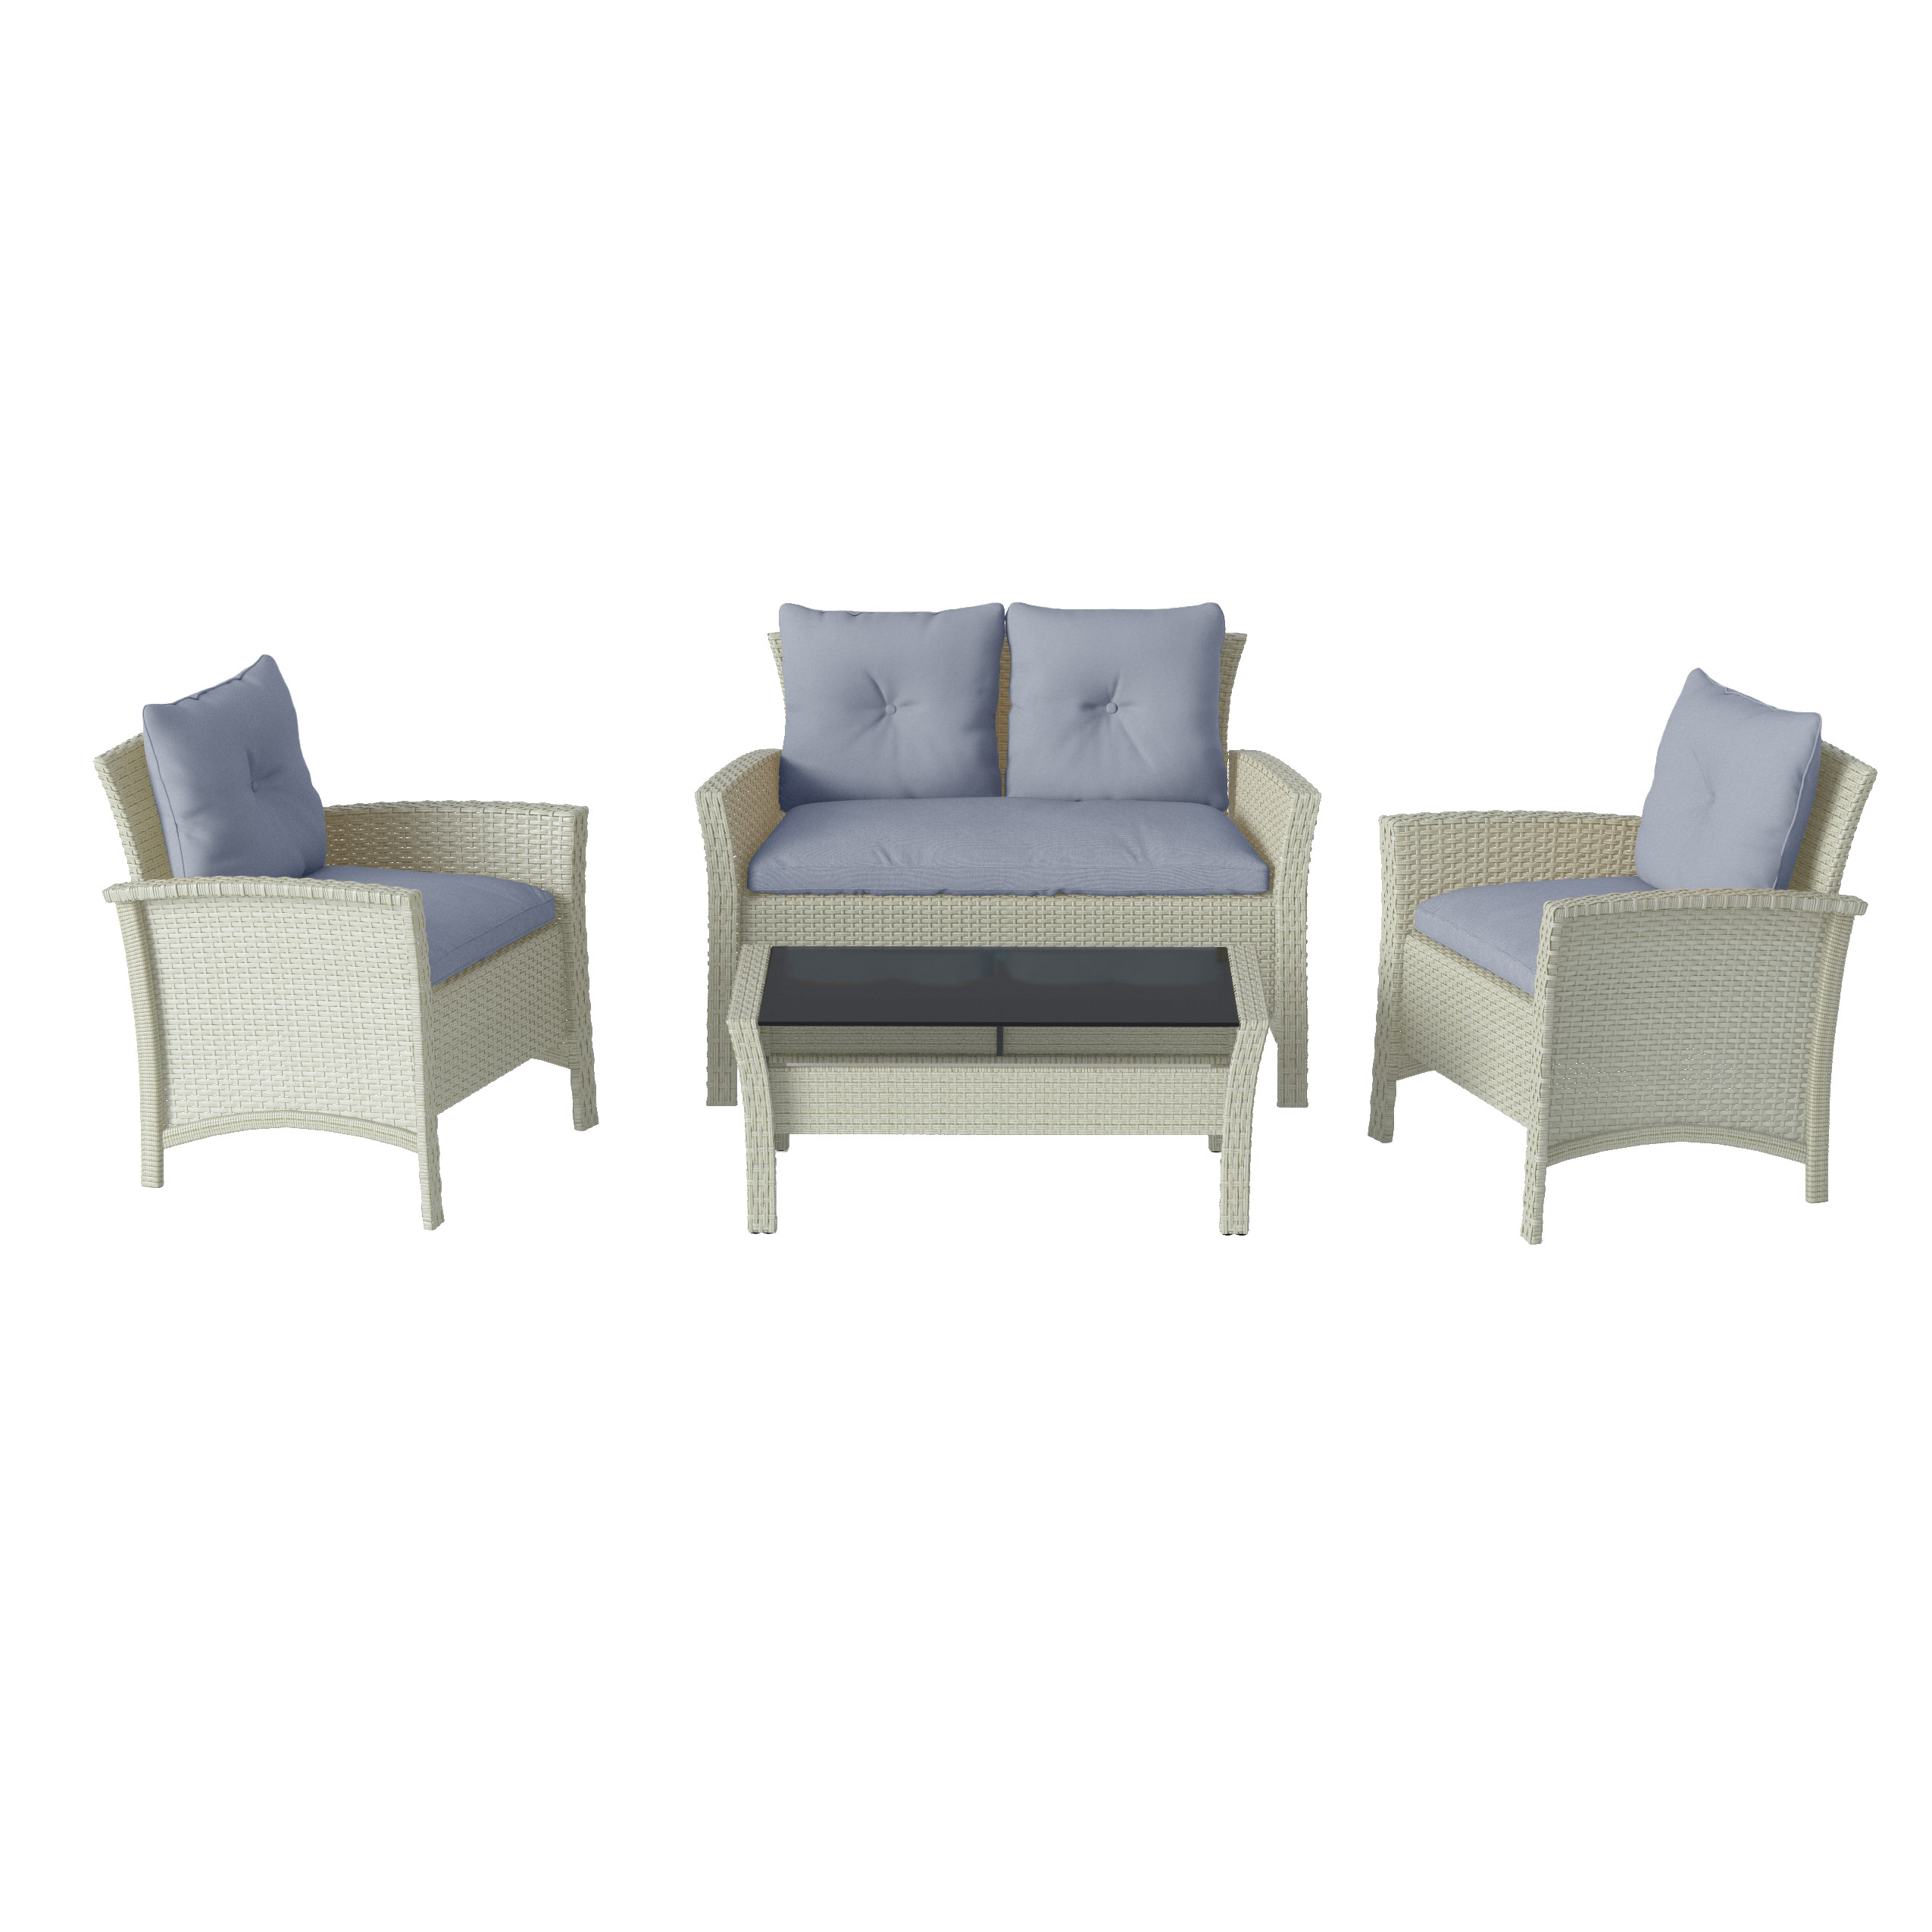 Wicker Patio Chair 4pc Distressed Grey Resin Rattan Wicker Patio Set With Light Blue Cushions